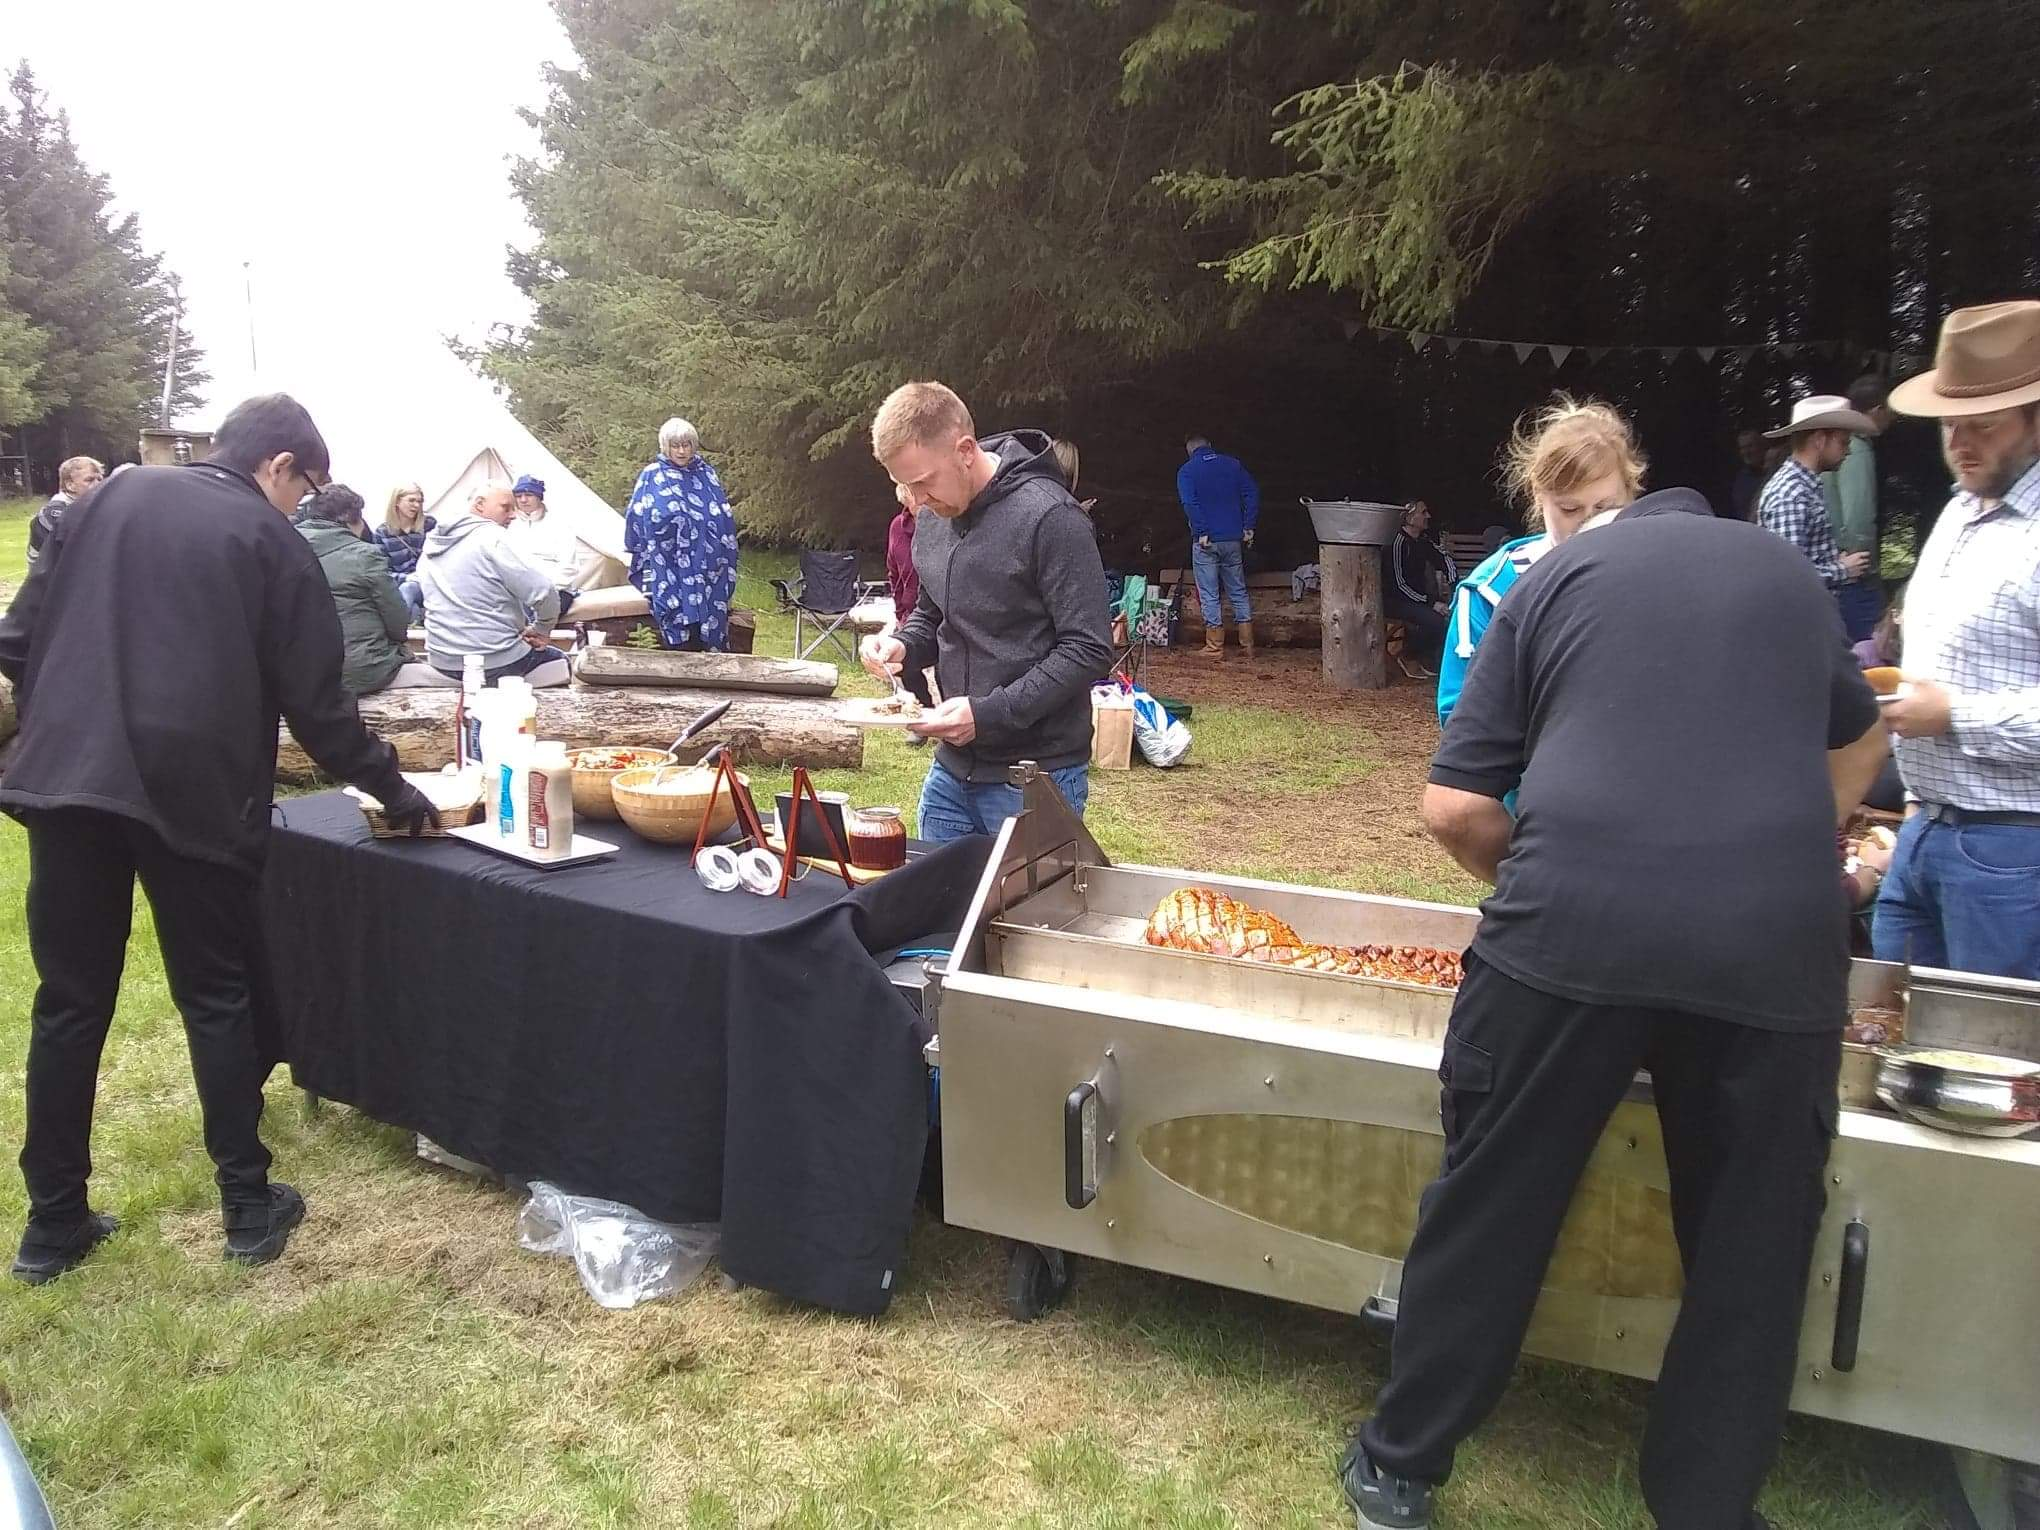 hog roast being served in our woodland clearing at an informal party